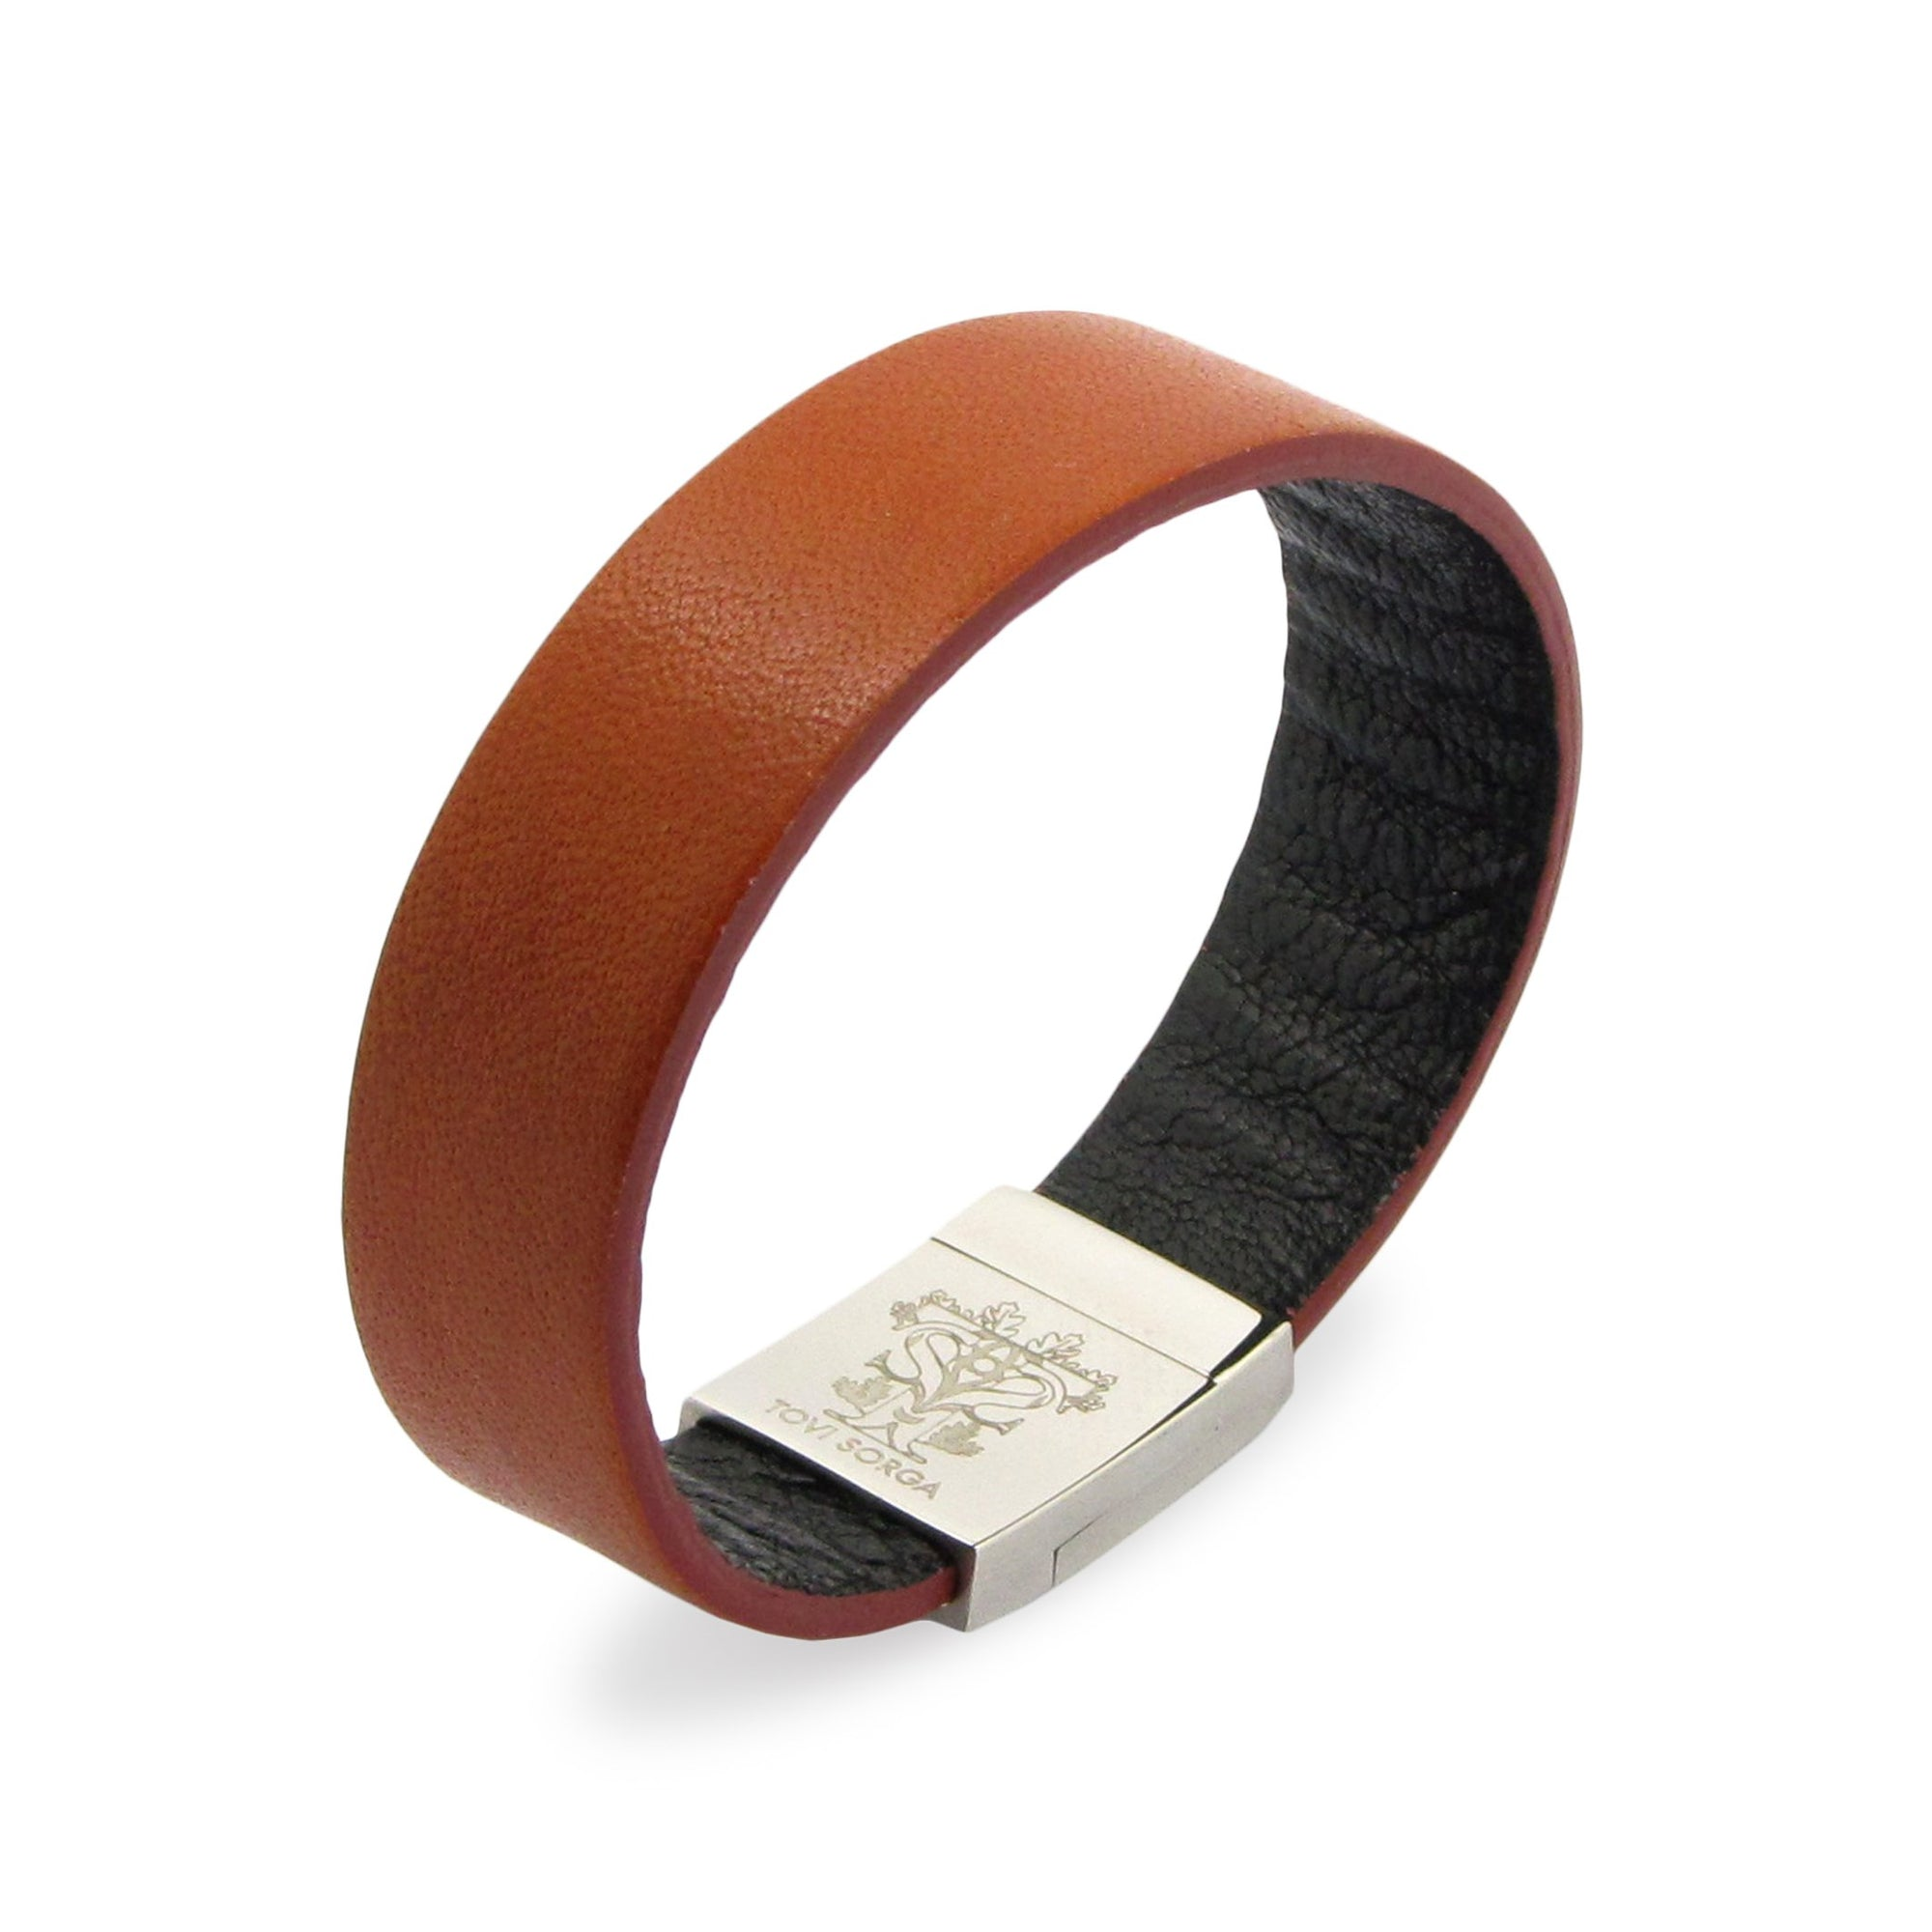 Leather Contactless Payment Bracelet: Tan on Black Contactless Payment Bracelet Tovi Sorga Extra-Small Brown